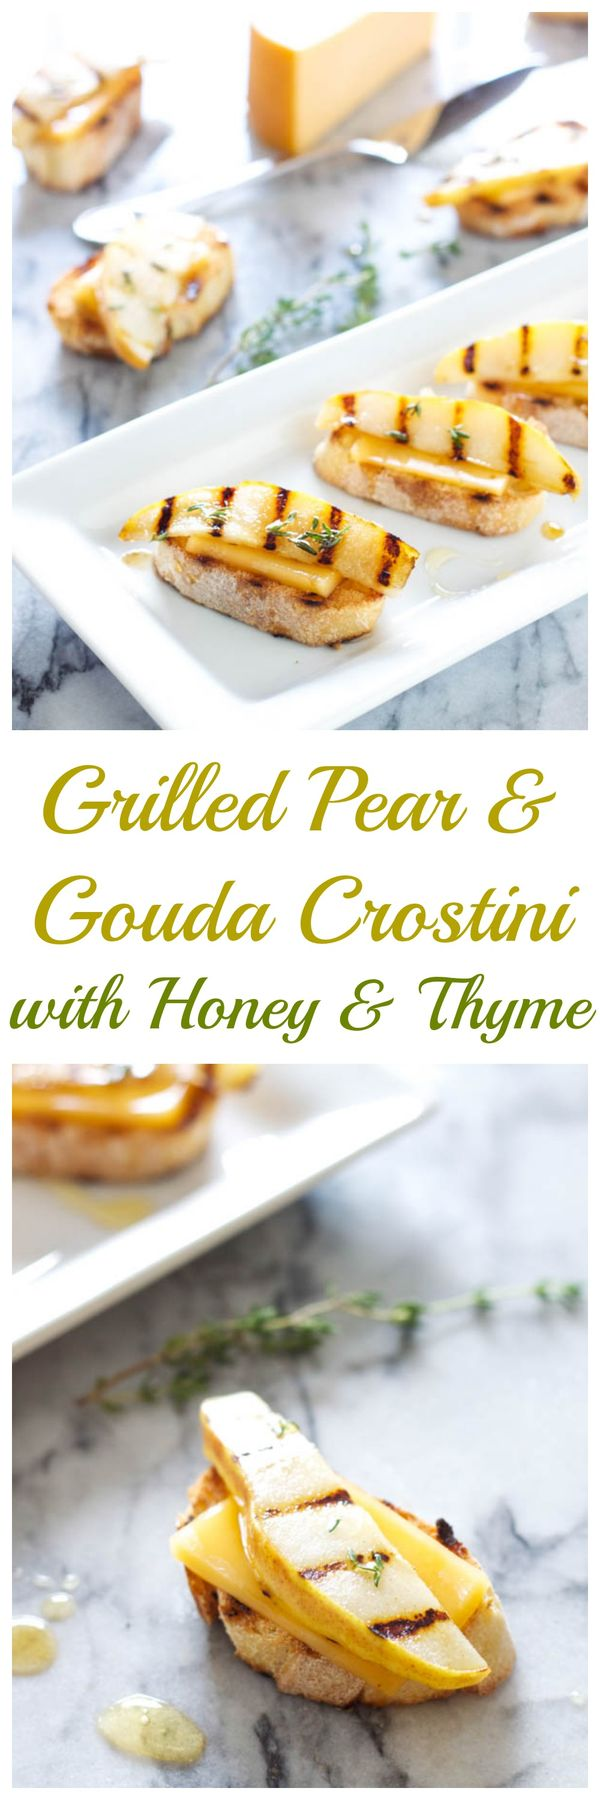 Grilled Pear and Gouda Crostini with Honey, and Thyme